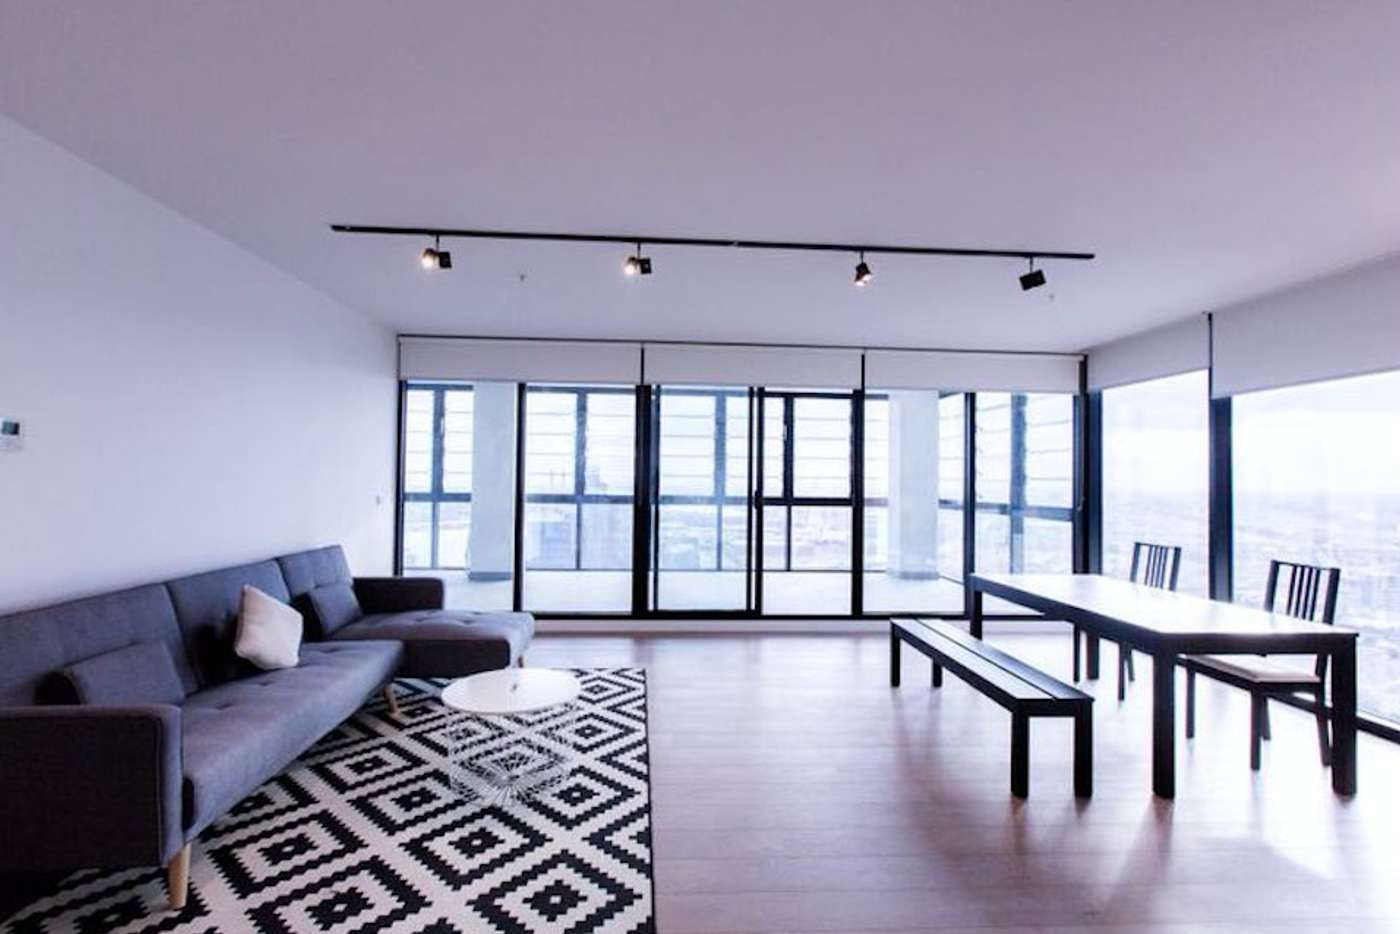 Main view of Homely apartment listing, 3002/65 Dudley Street, West Melbourne VIC 3003